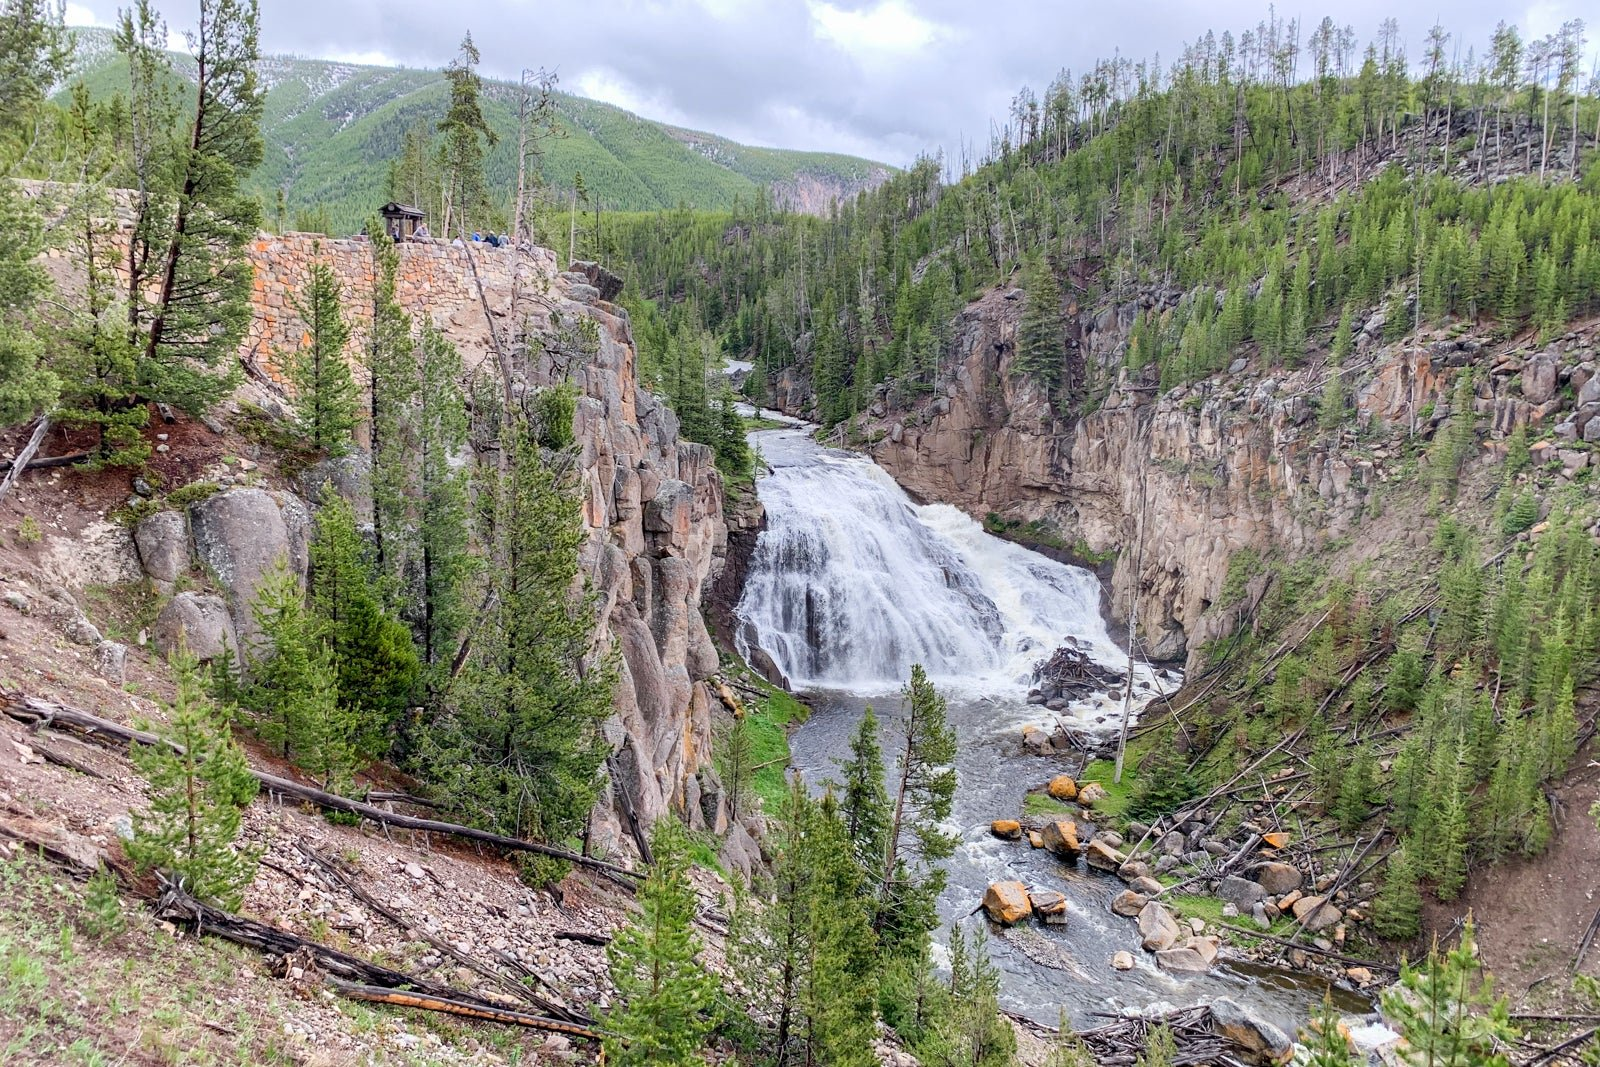 A beginner's guide to visiting Yellowstone National Park: Everything you should see and do - The Points Guy